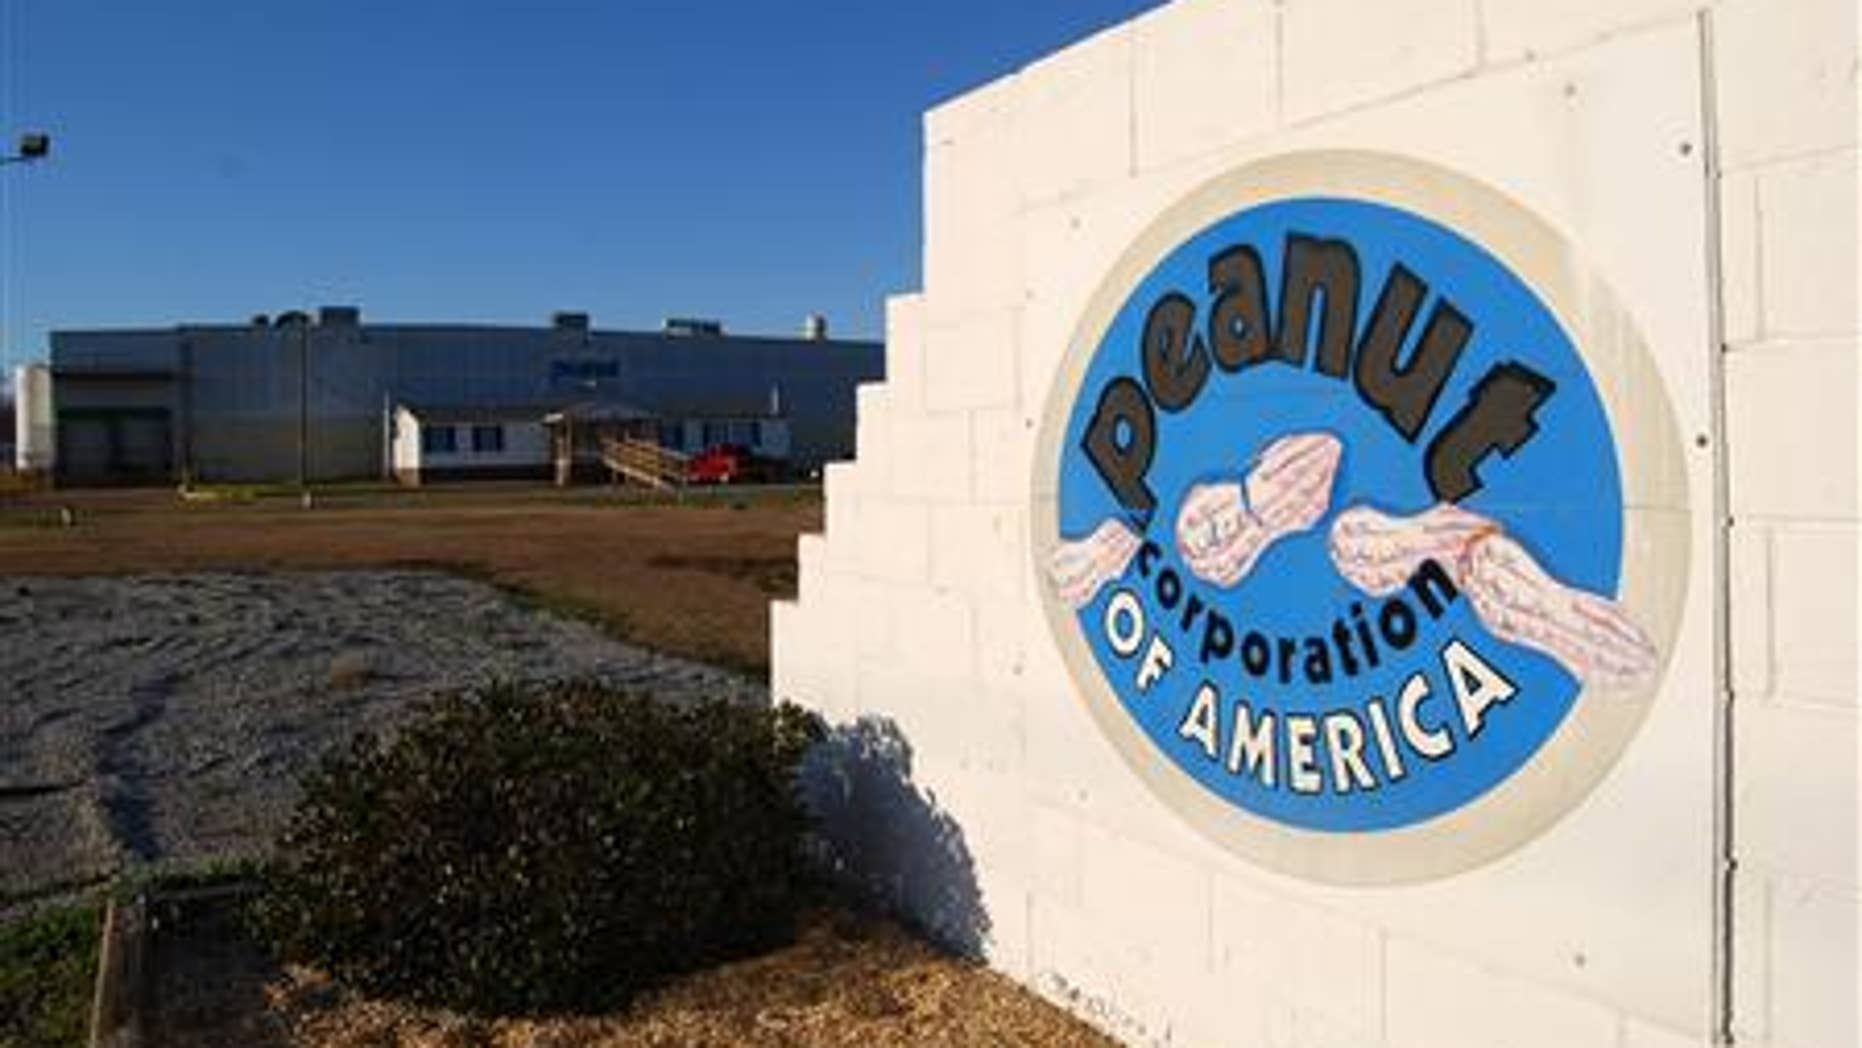 The building of the now-closed Peanut Corporation of America plant is pictured in Blakely, Georgia on January 29, 2009. REUTERS/Matthew Bigg